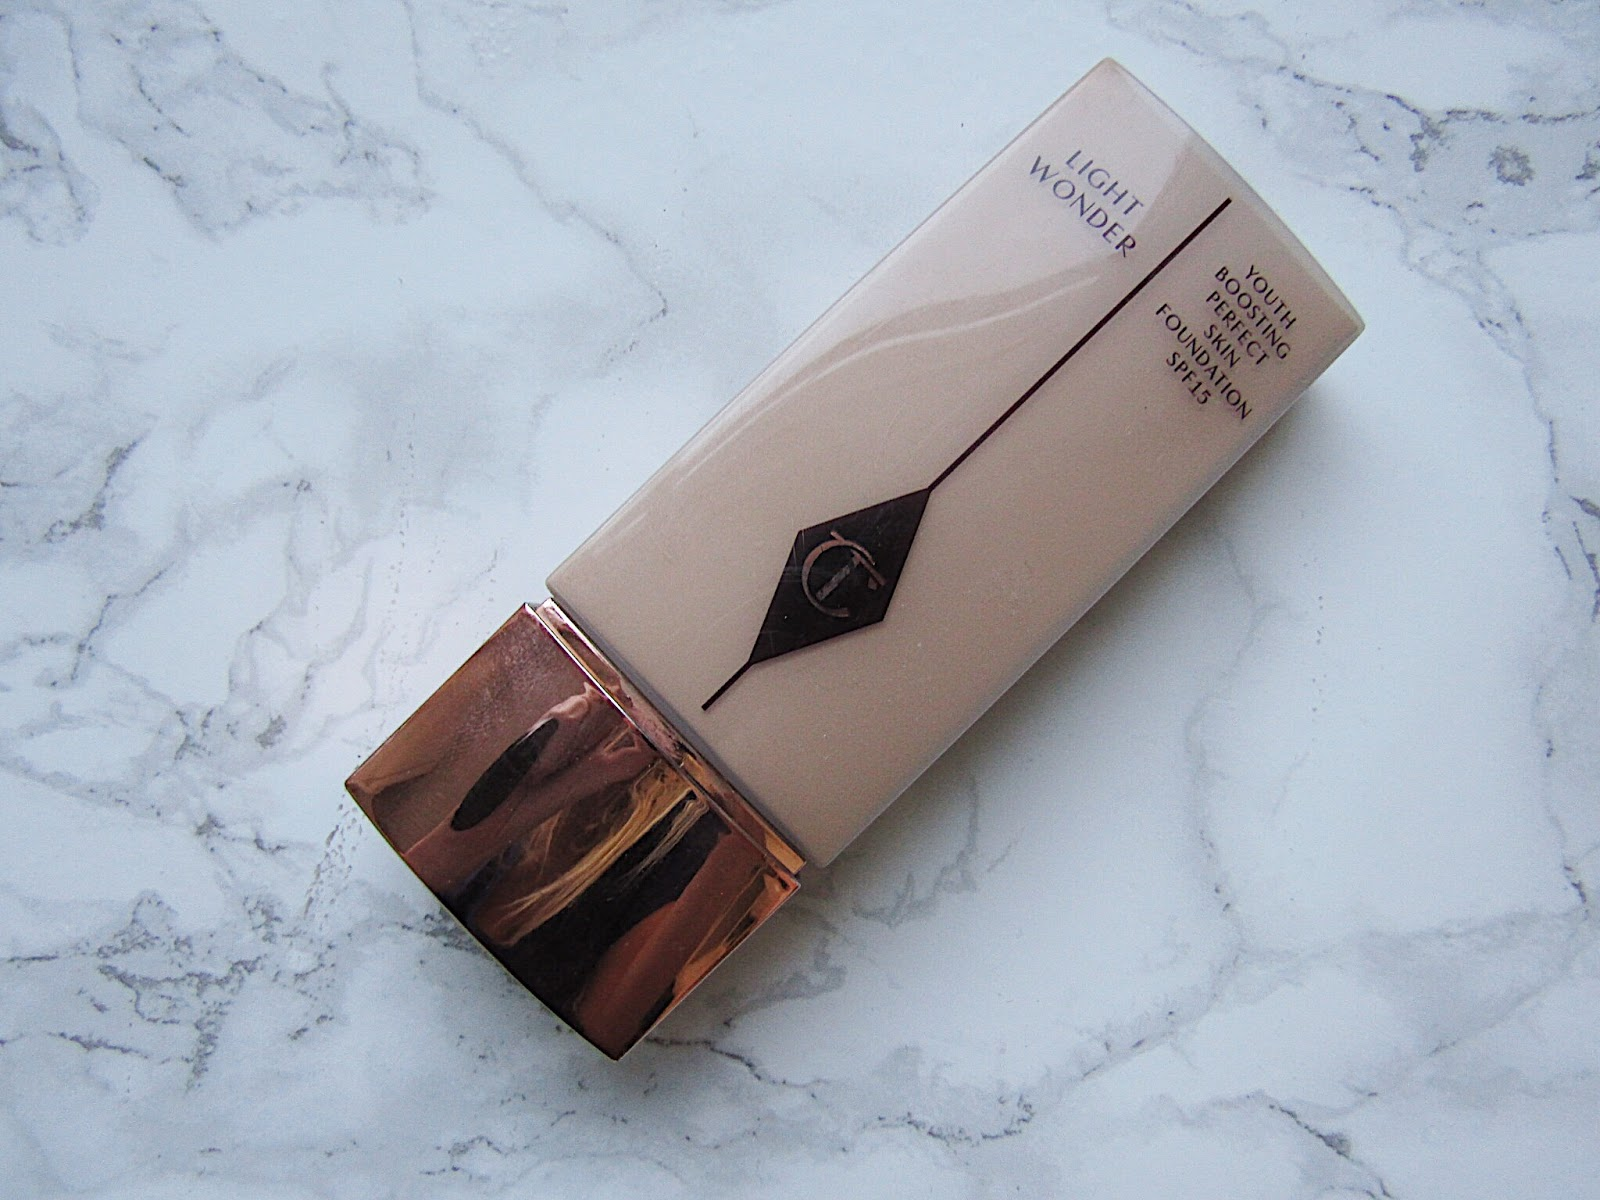 Charlotte Tilbury Light Wonder Foundation shade 4